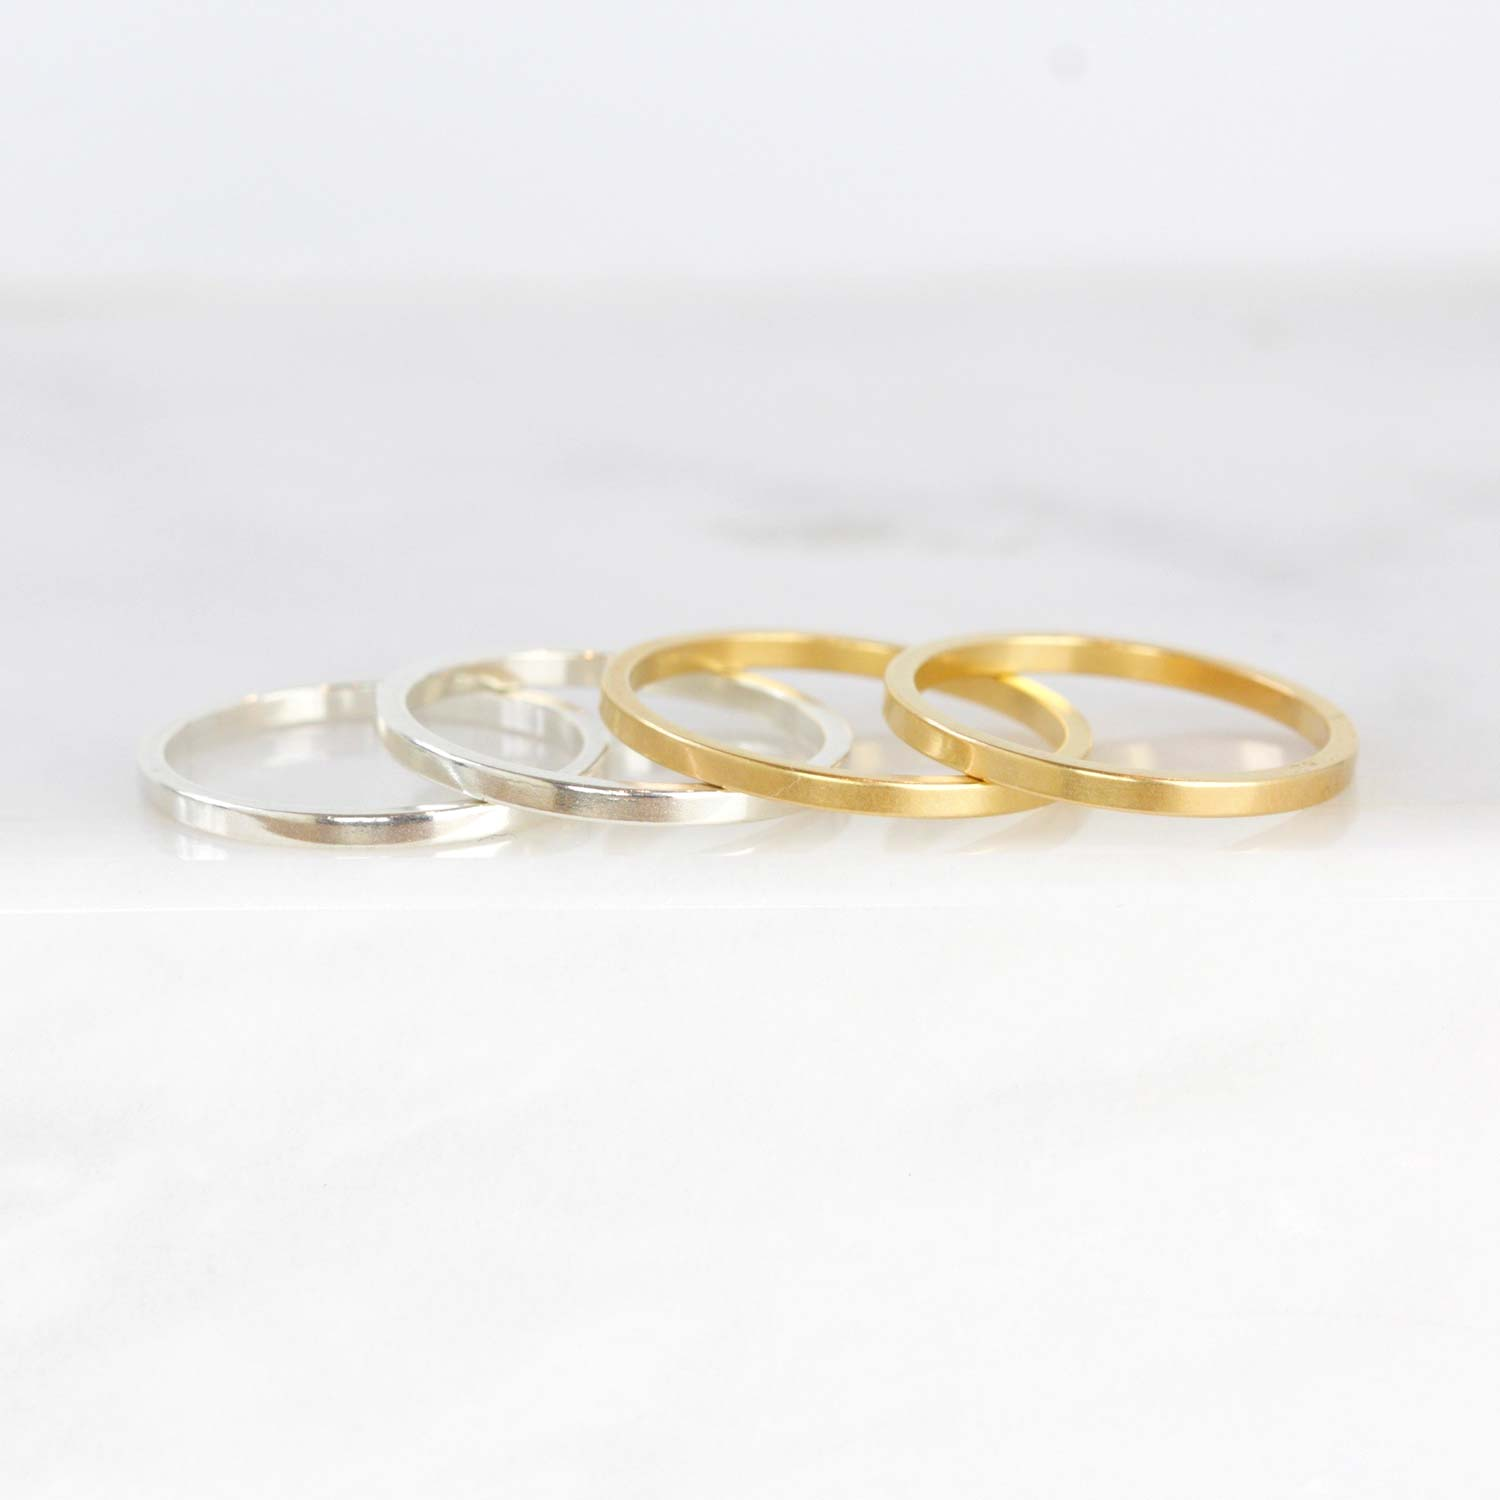 Classic Gold Vermeil or Silver Band Rings Holiday Gift for Friends